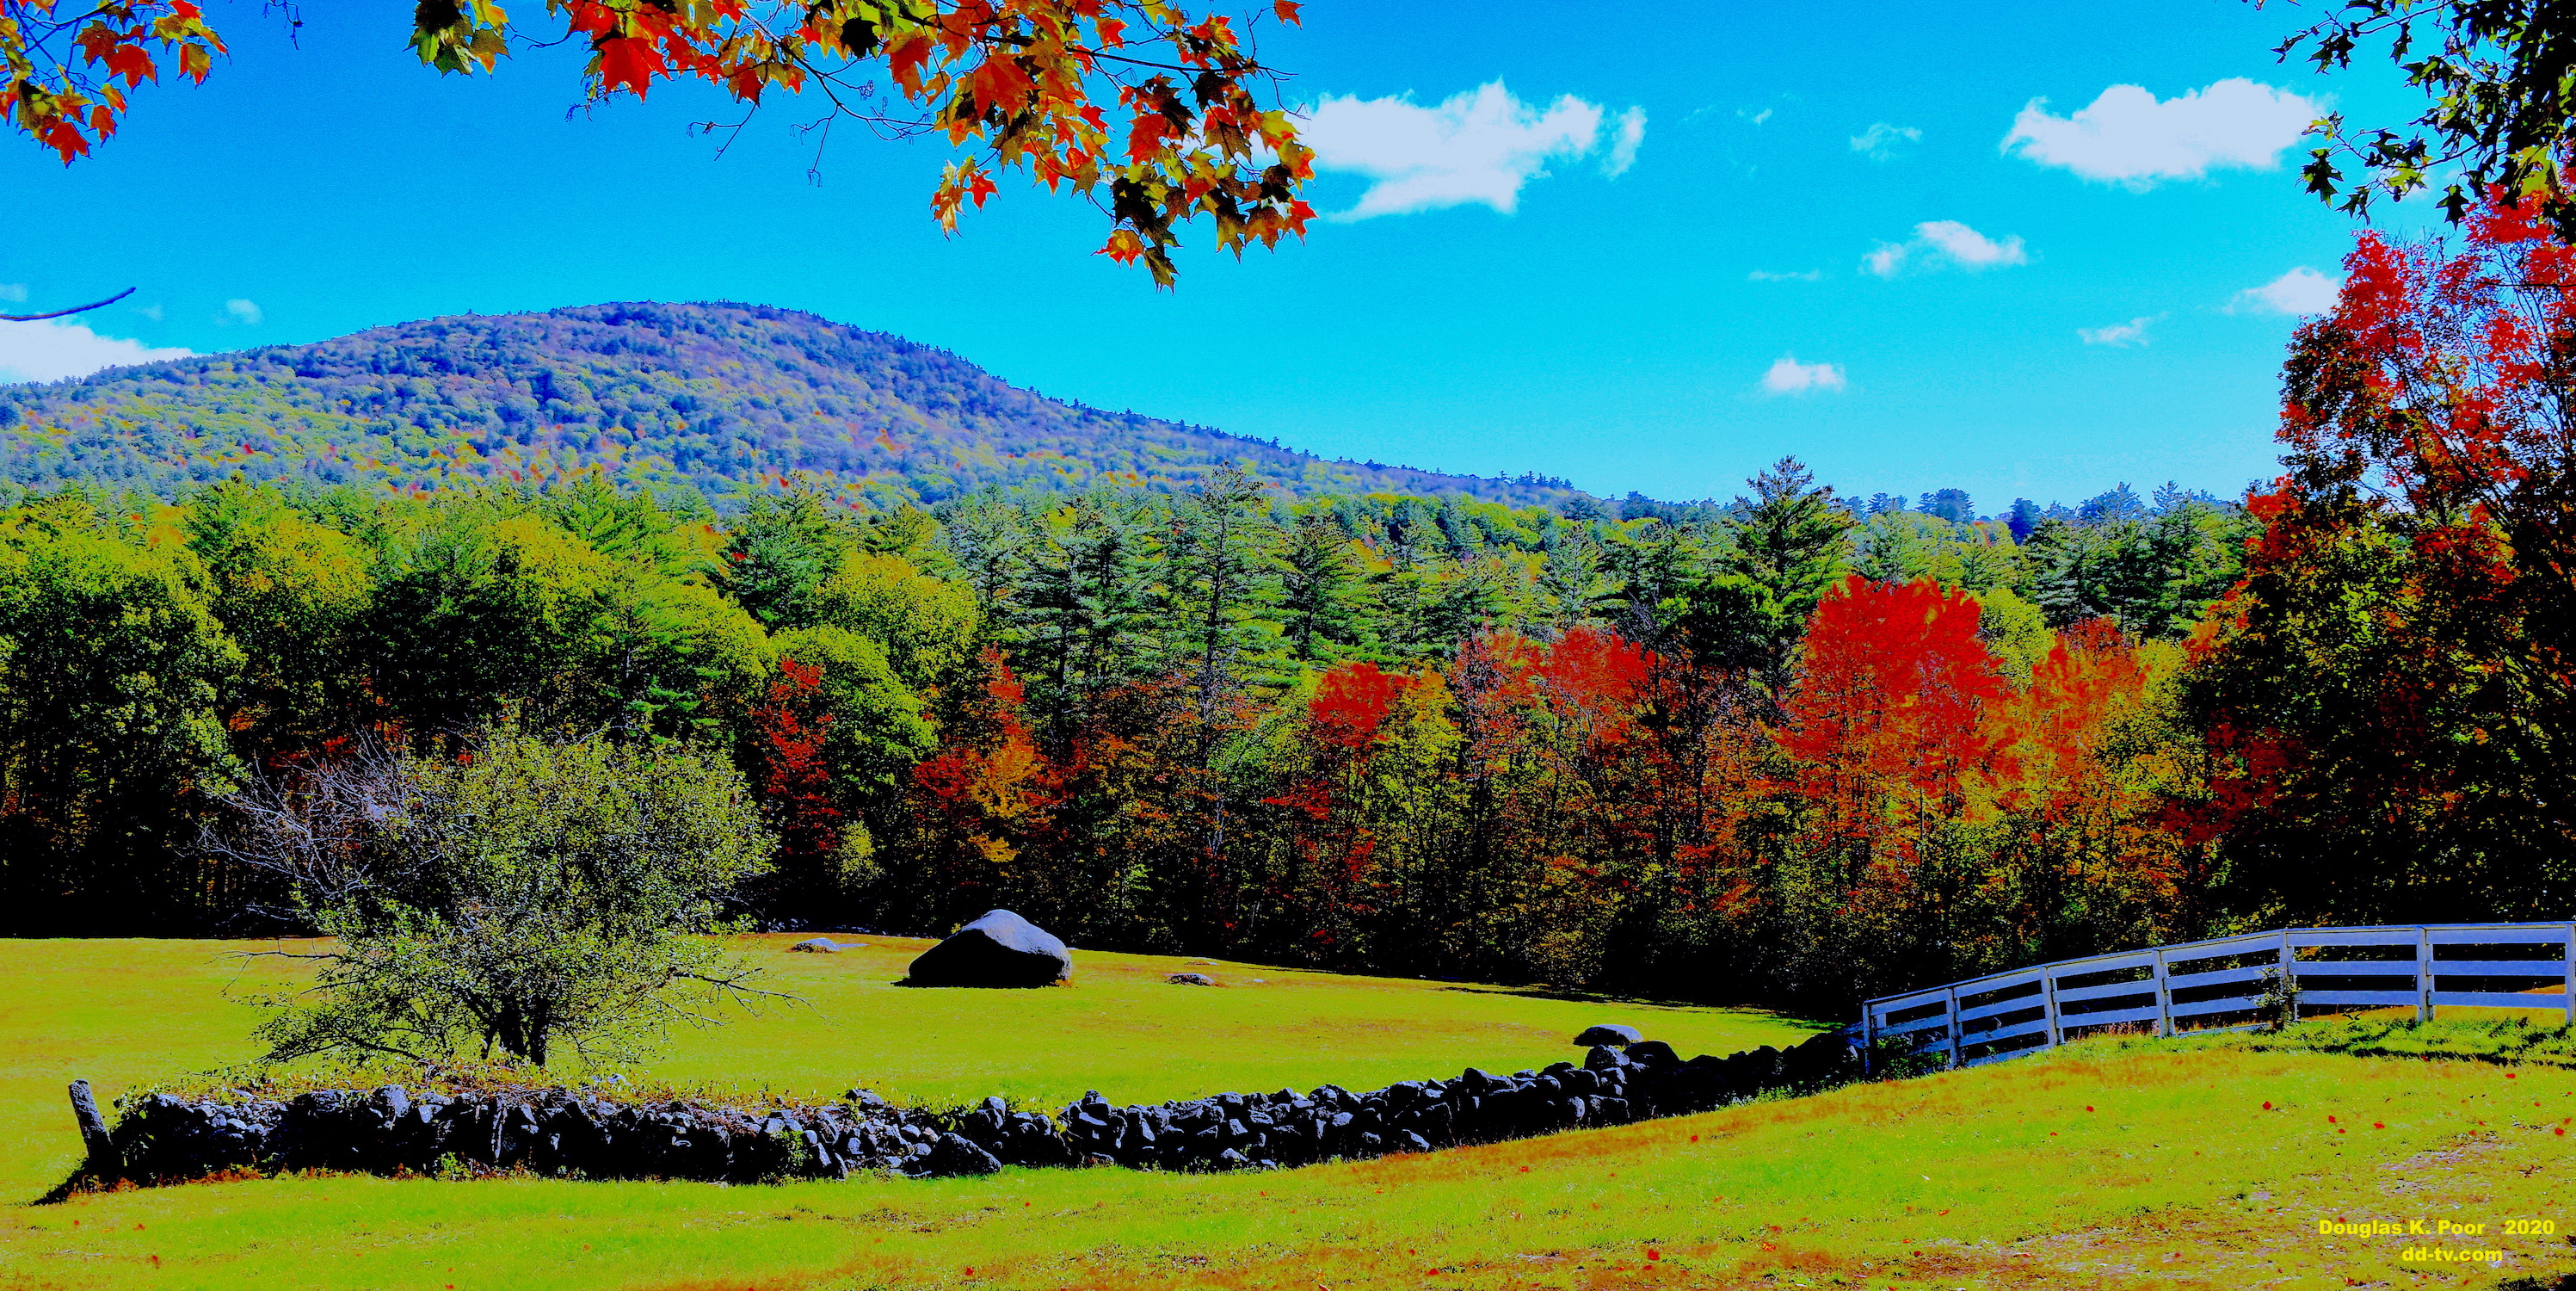 ==================-STONEWALL-WHITE-FENCE-FOLIAGE-AND-MTN-3-smaller-size=======================================================================================================-STONEWALL-WHITE-FENCE-FOLIAGE-AND-MTN-3-smaller-size